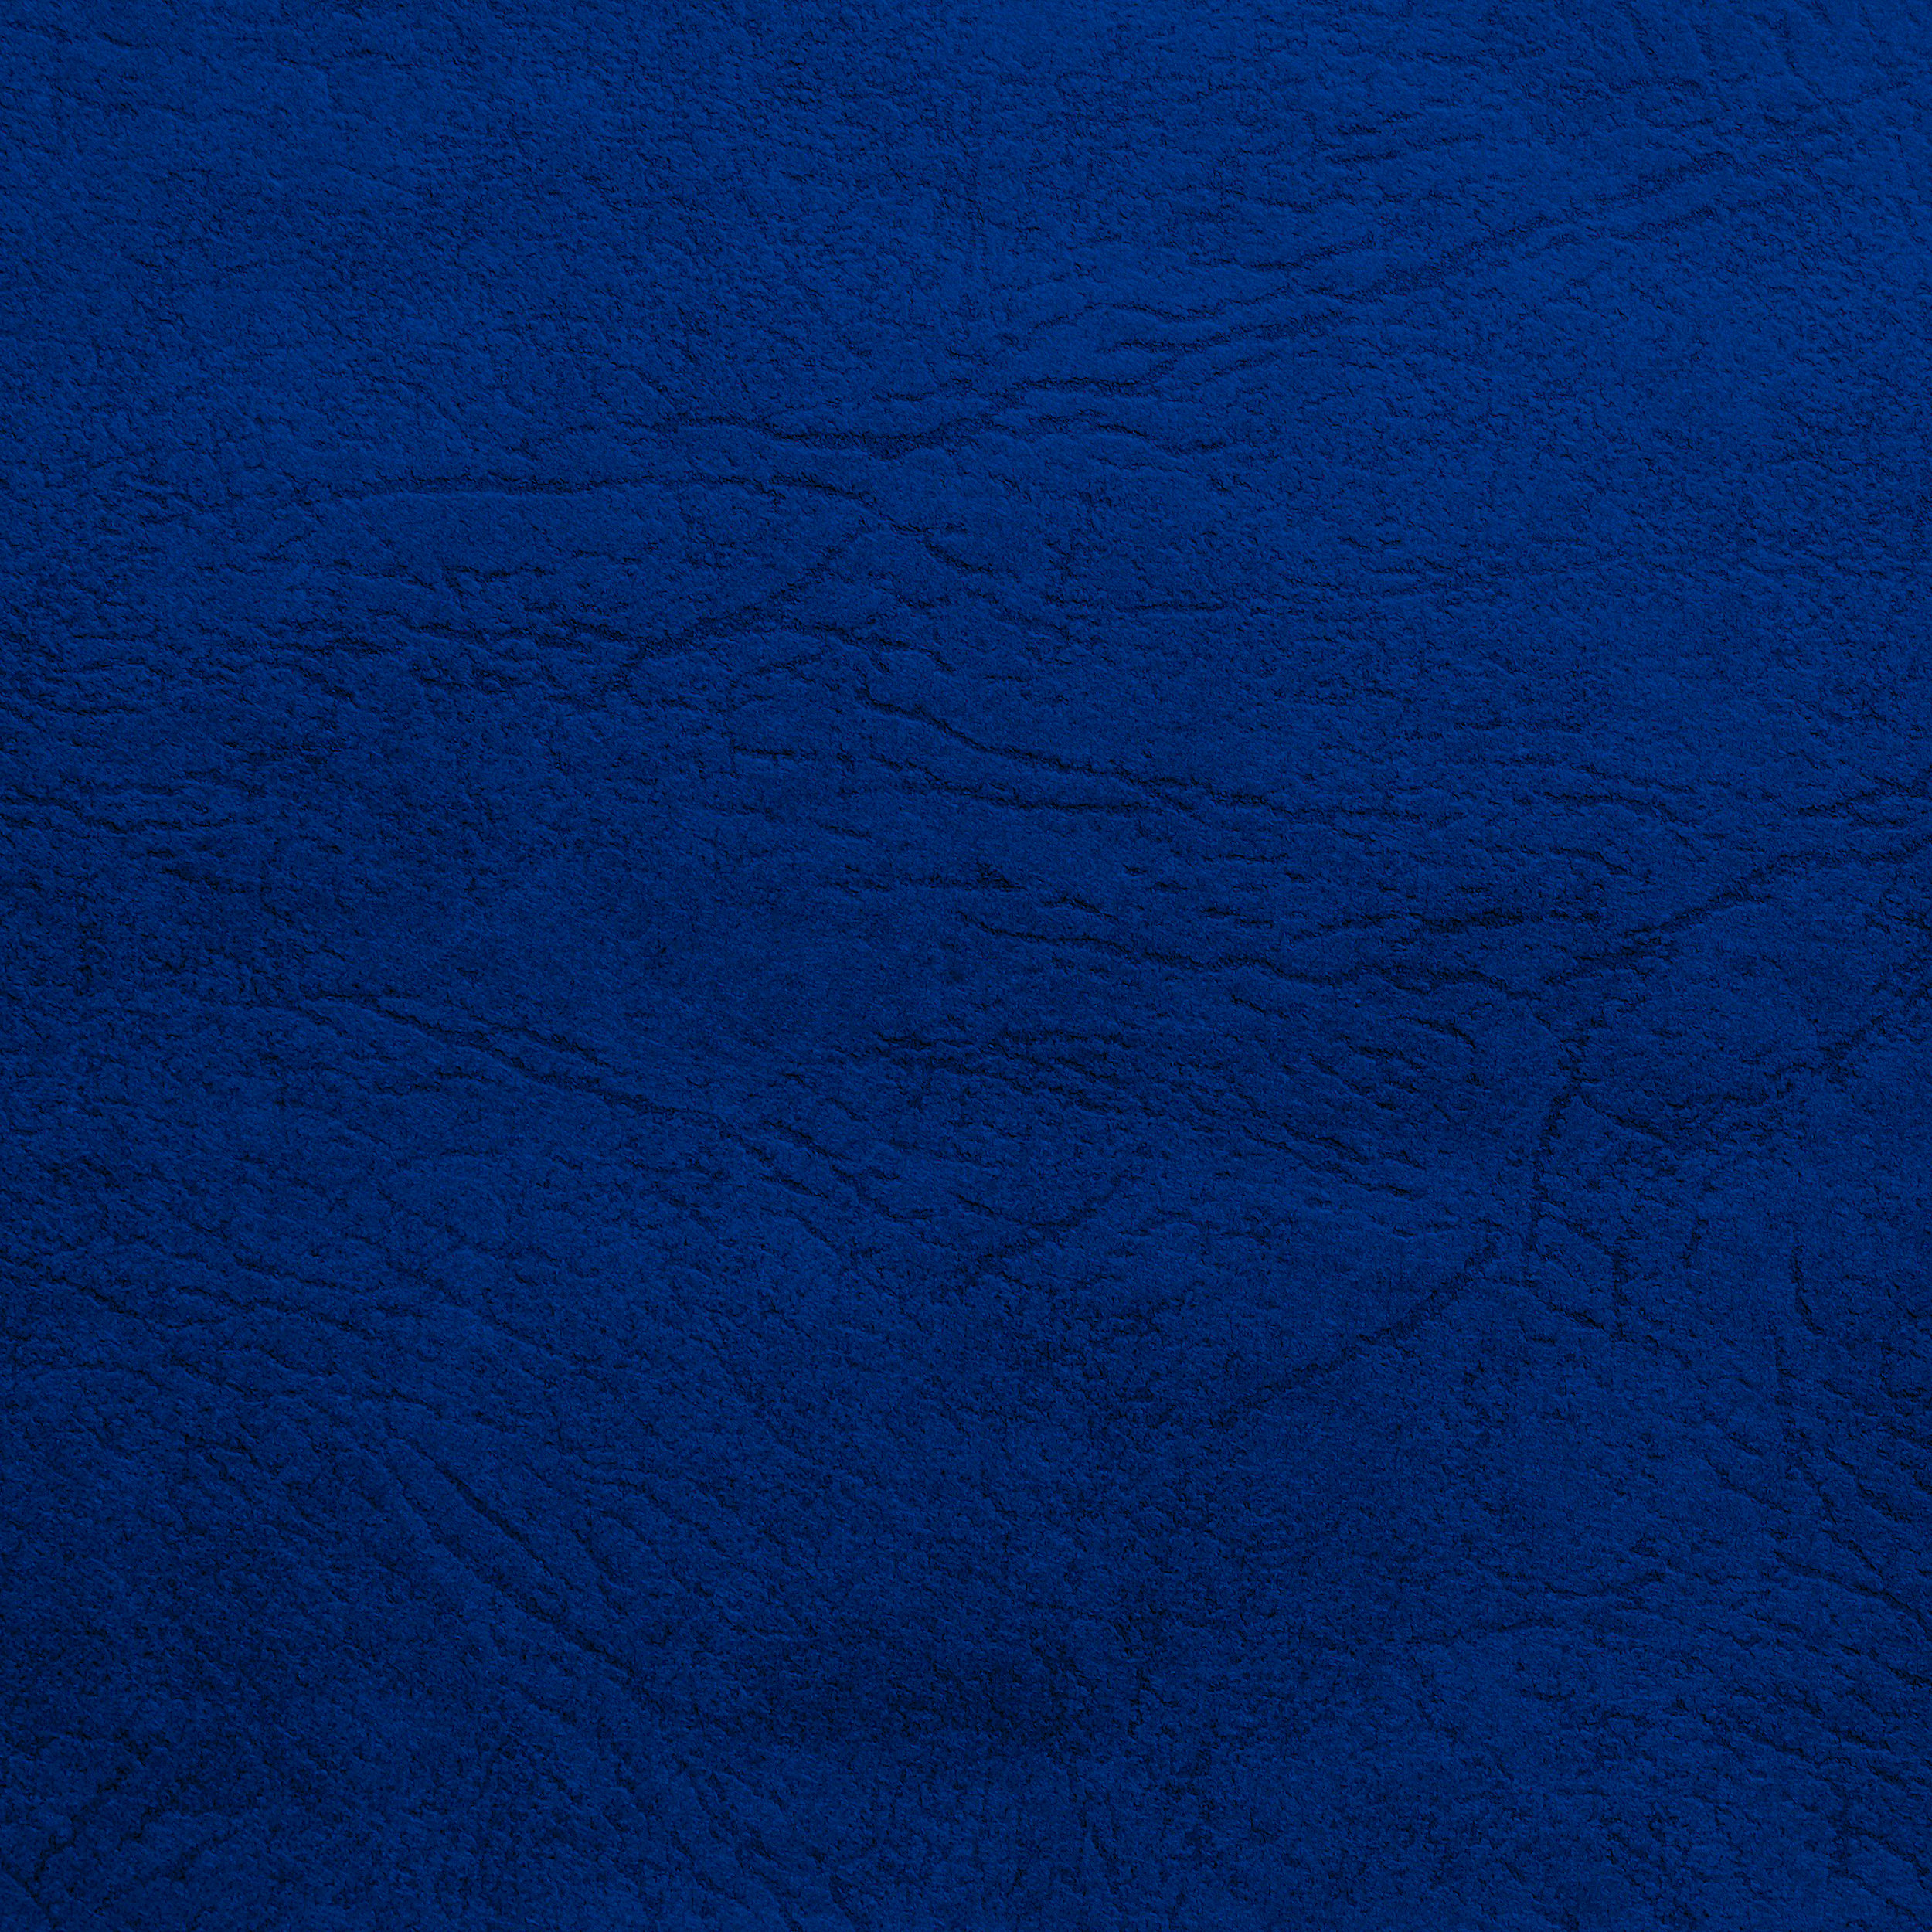 BLUE - LEATHER DYE